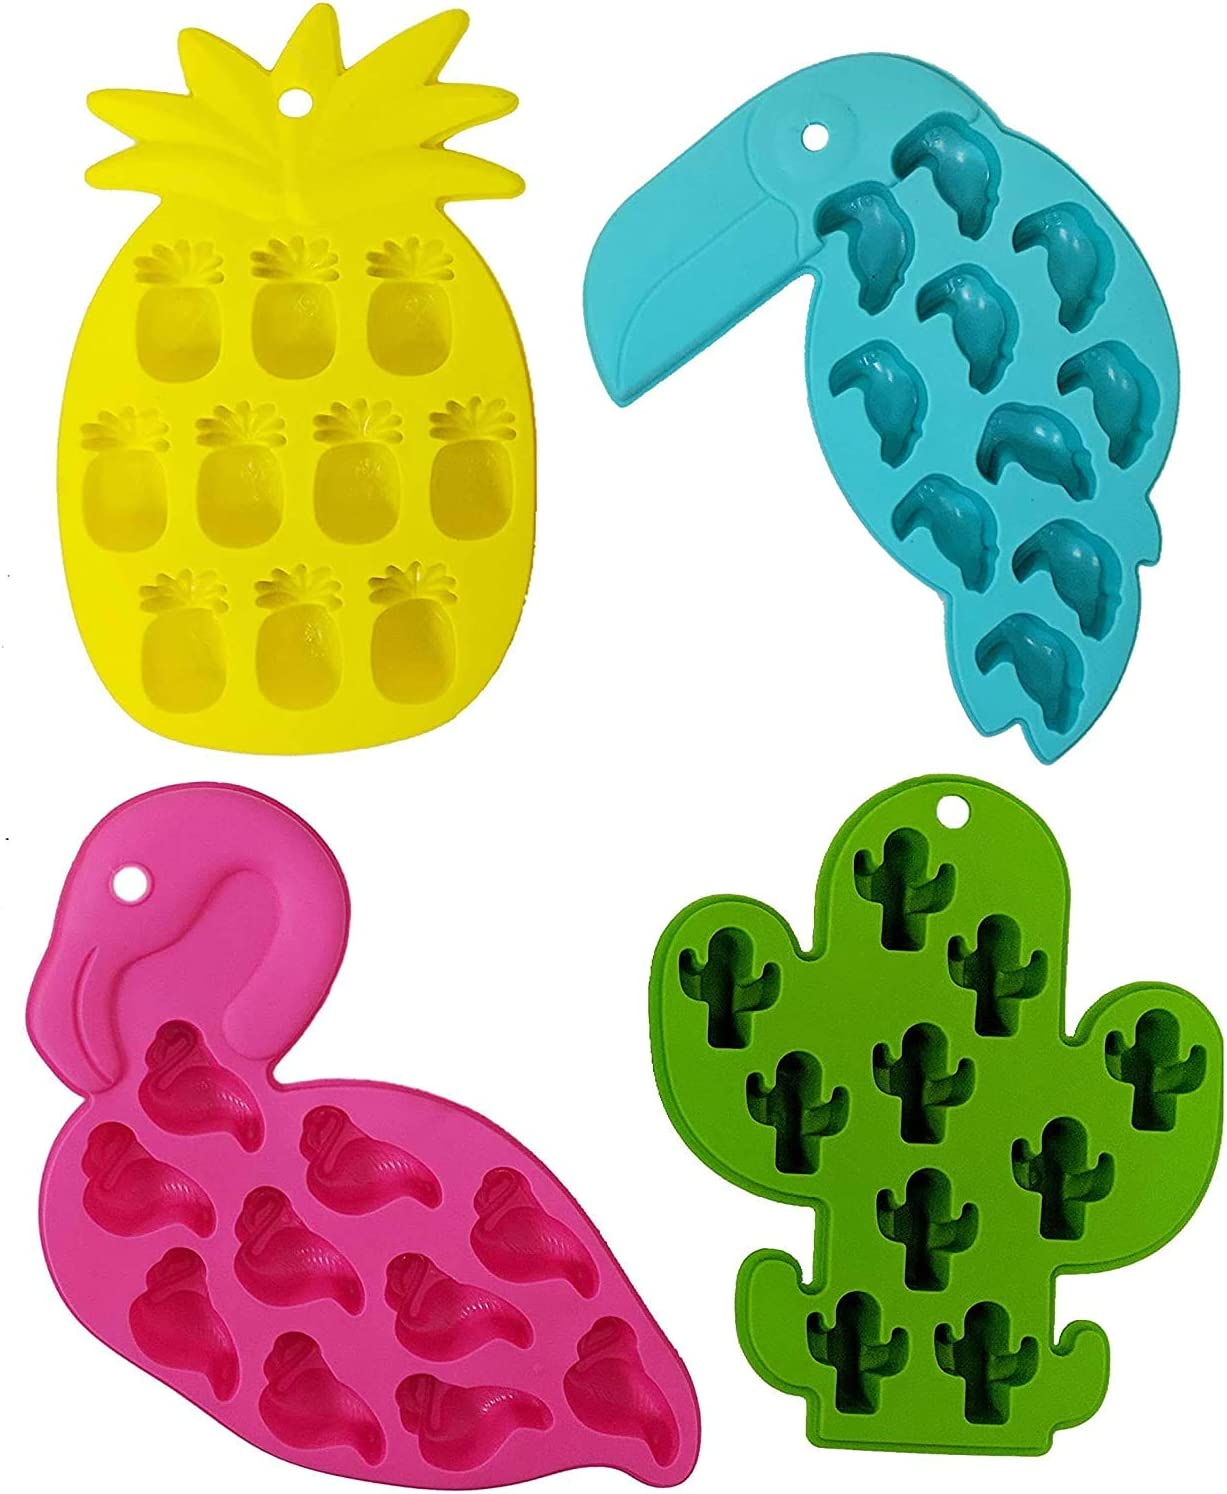 Candy Molds Silicone Chocolate Molds - Silicone Molds Including Cactus, Flamingo, Parrot, and Pineapple for Making Candy, Chocolate, Fruit Snack, or use as ice cube trays - Pack of 4